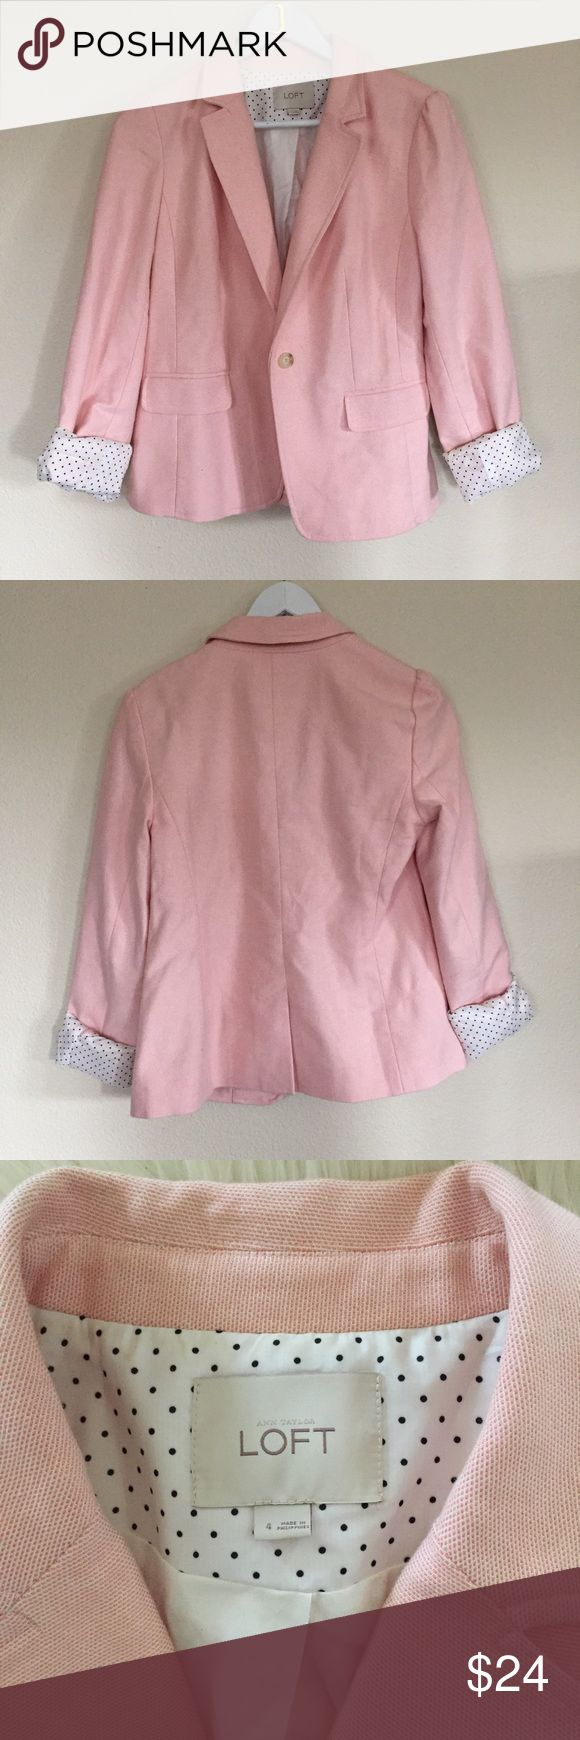 Ann Taylor LOFT Light Pink Blazer Ann Taylor LOFT light pink blazer with adorable polka dot lining. Size 4. Gently worn. Smoke and pet free home. Hope you enjoy! 💕 LOFT Jackets & Coats Blazers